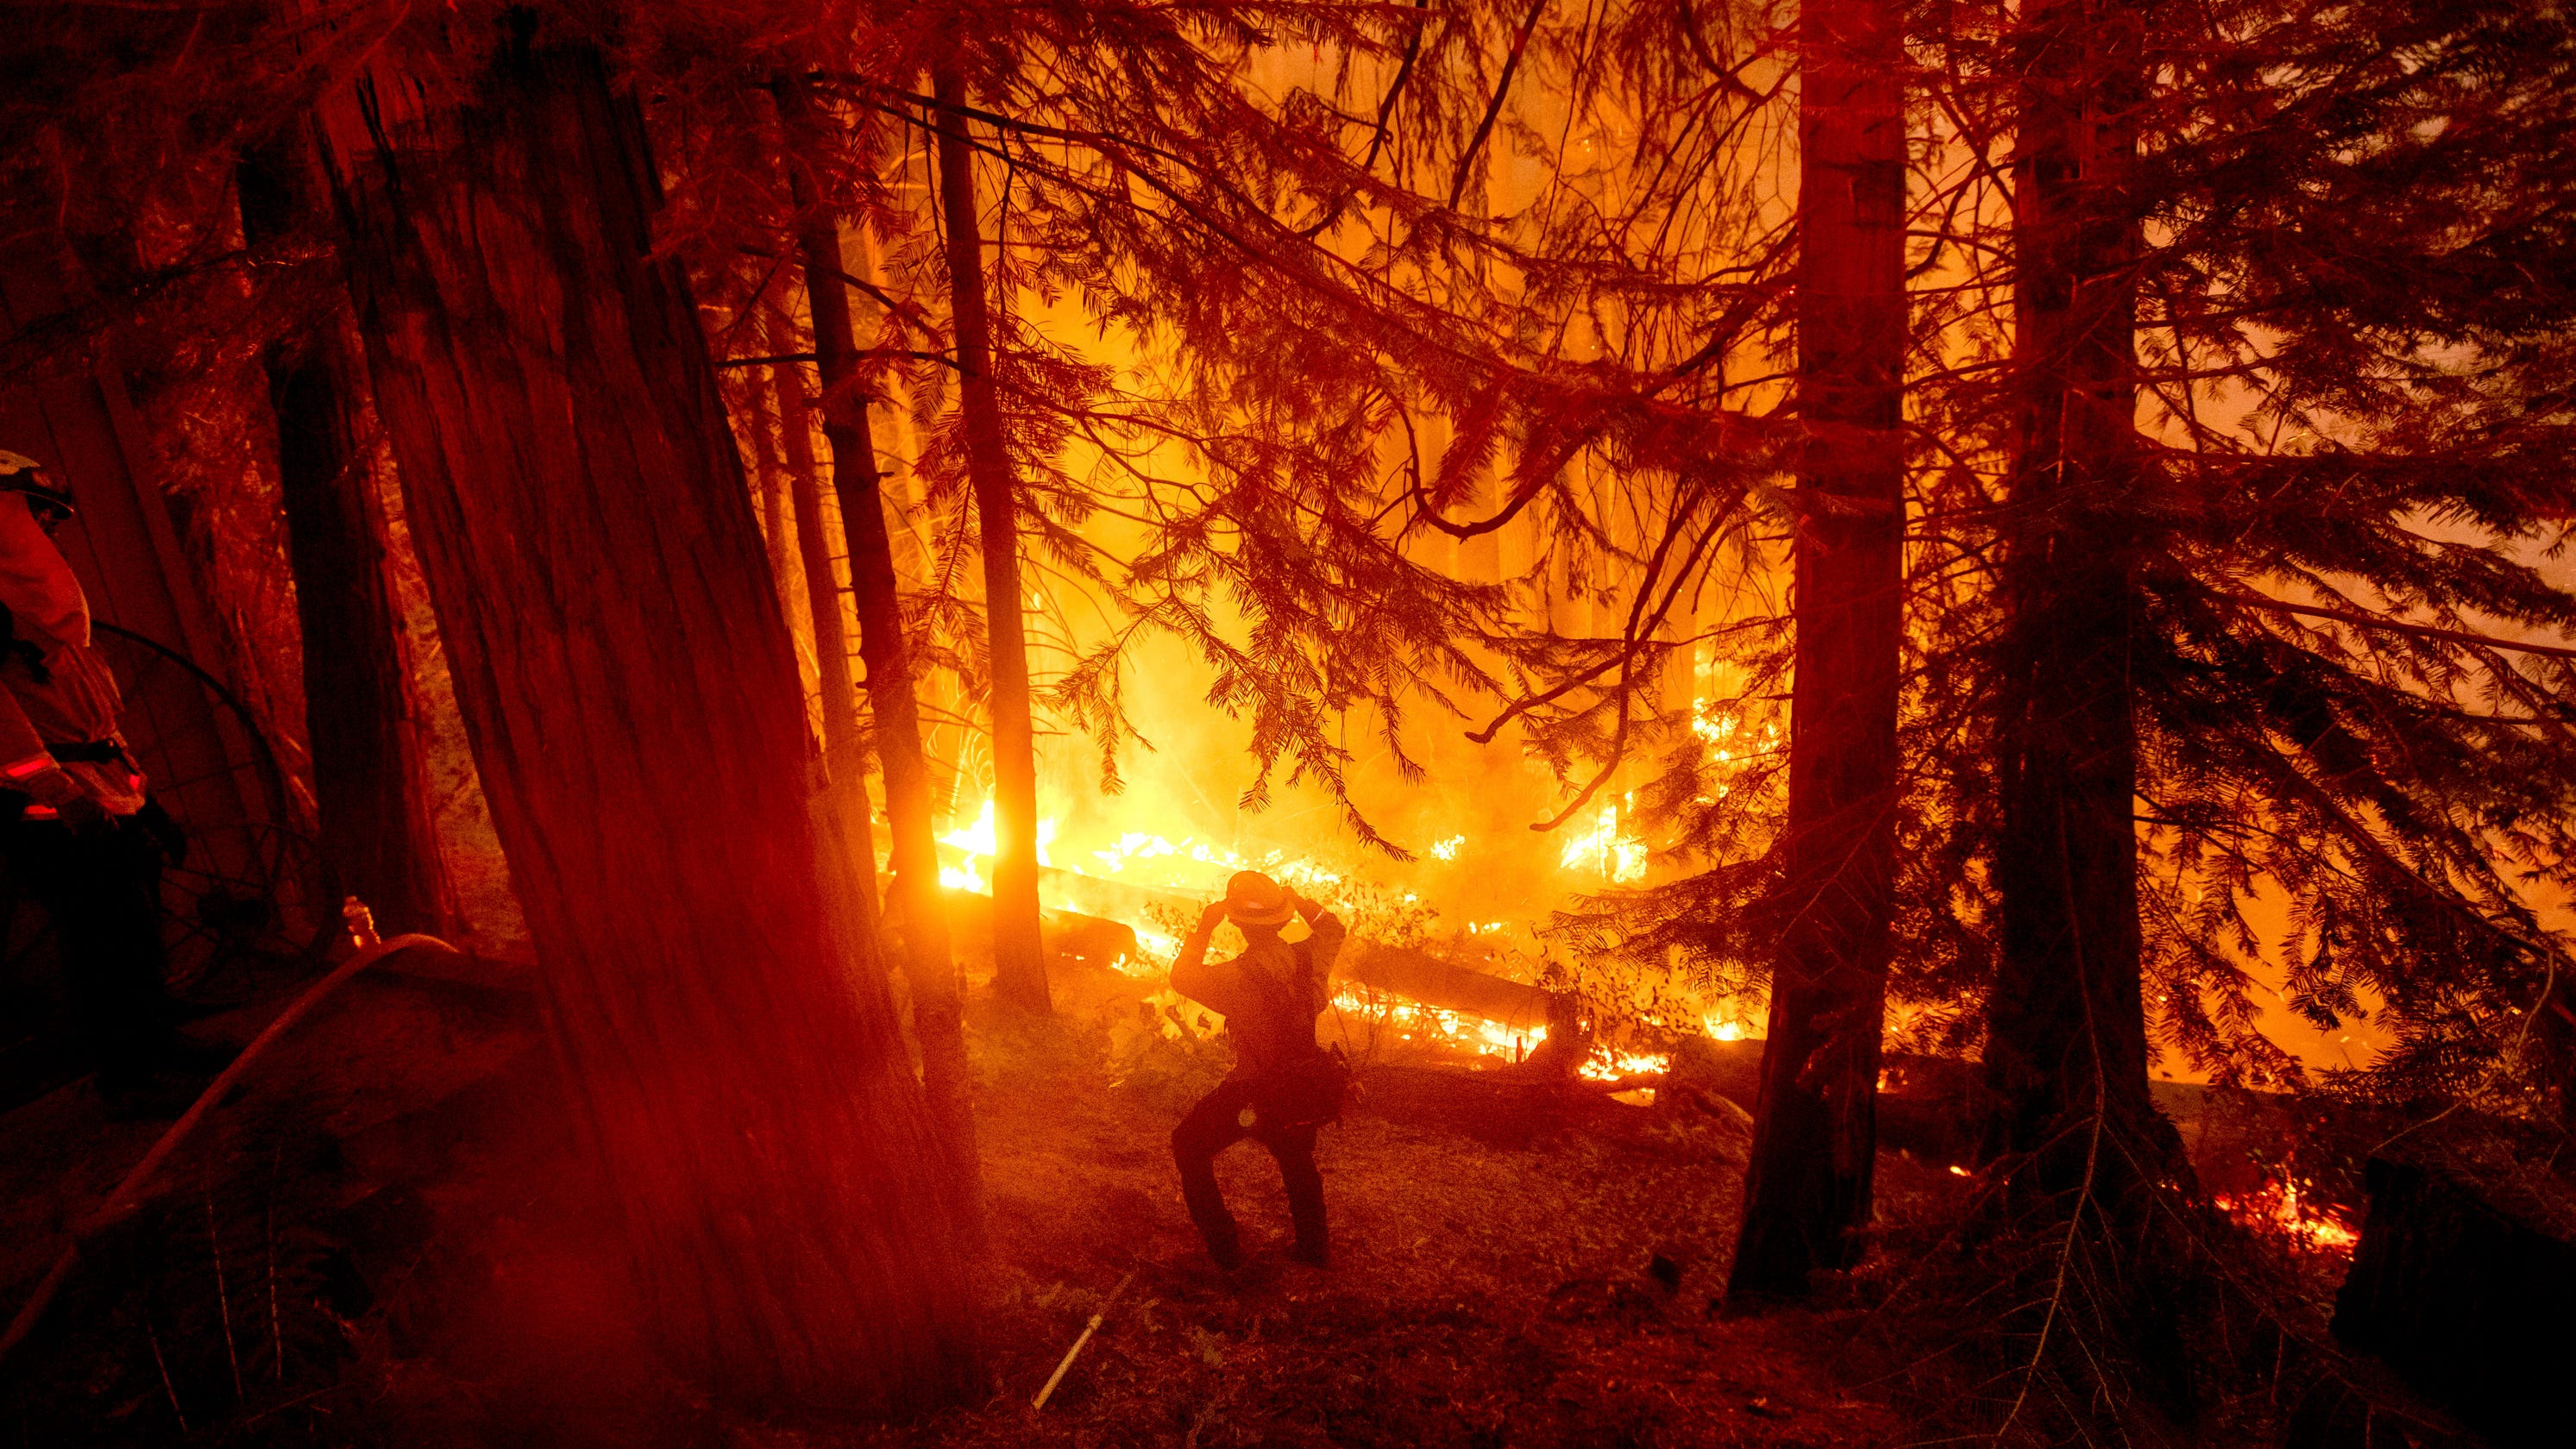 Historic wildfires rage across Pacific Northwest: Washington town devastated; helicopters rescuing stranded California hikers – USA TODAY